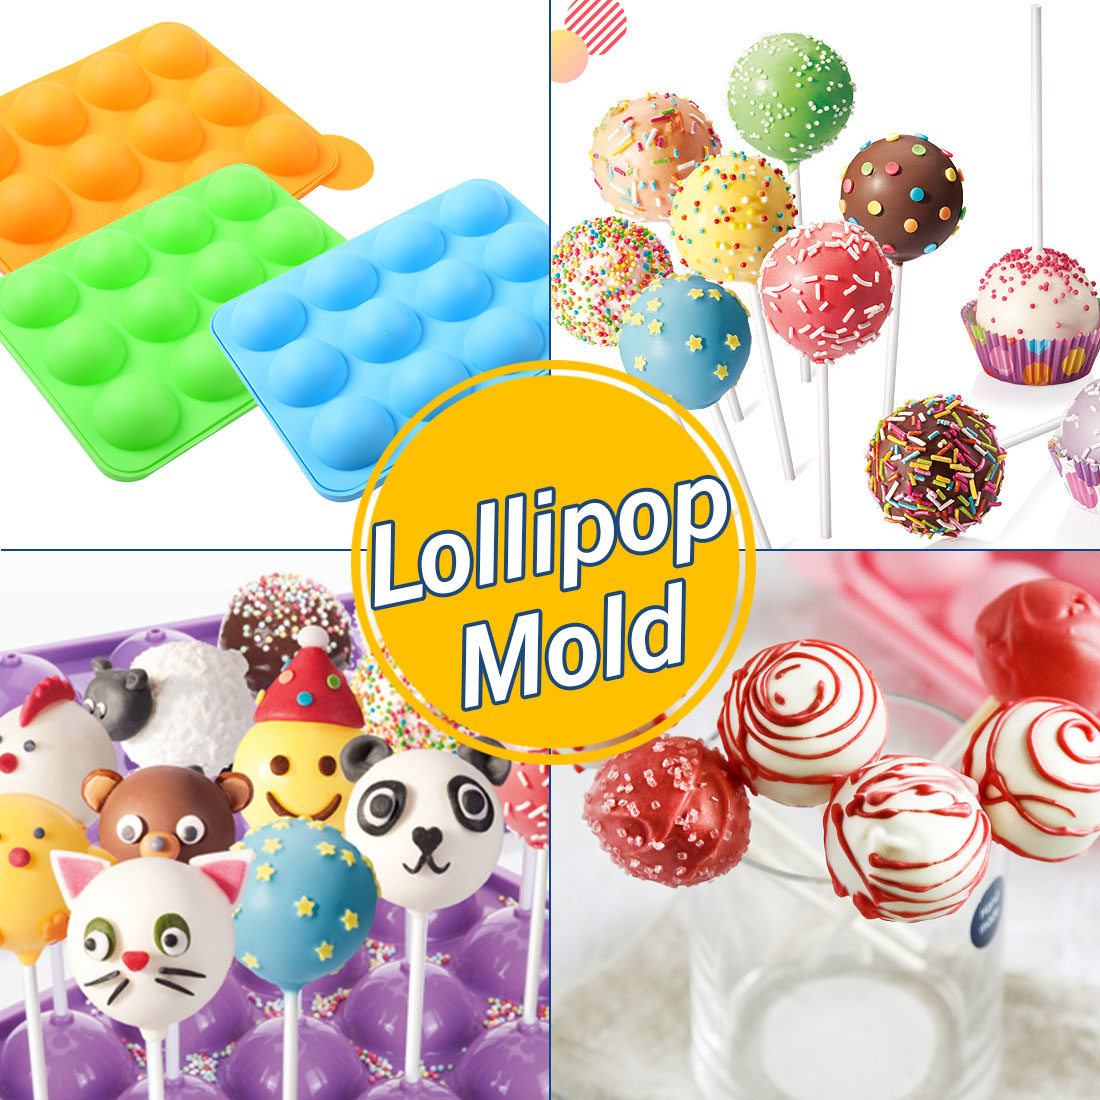 Baking & Pastry Tools Bakeware Beautiful Silicone Round Lollipop Cake Chocolate Soap Pudding Jelly Candy Ice Cookie Biscuit Mold Mould Pan Bakeware Wxv Sale